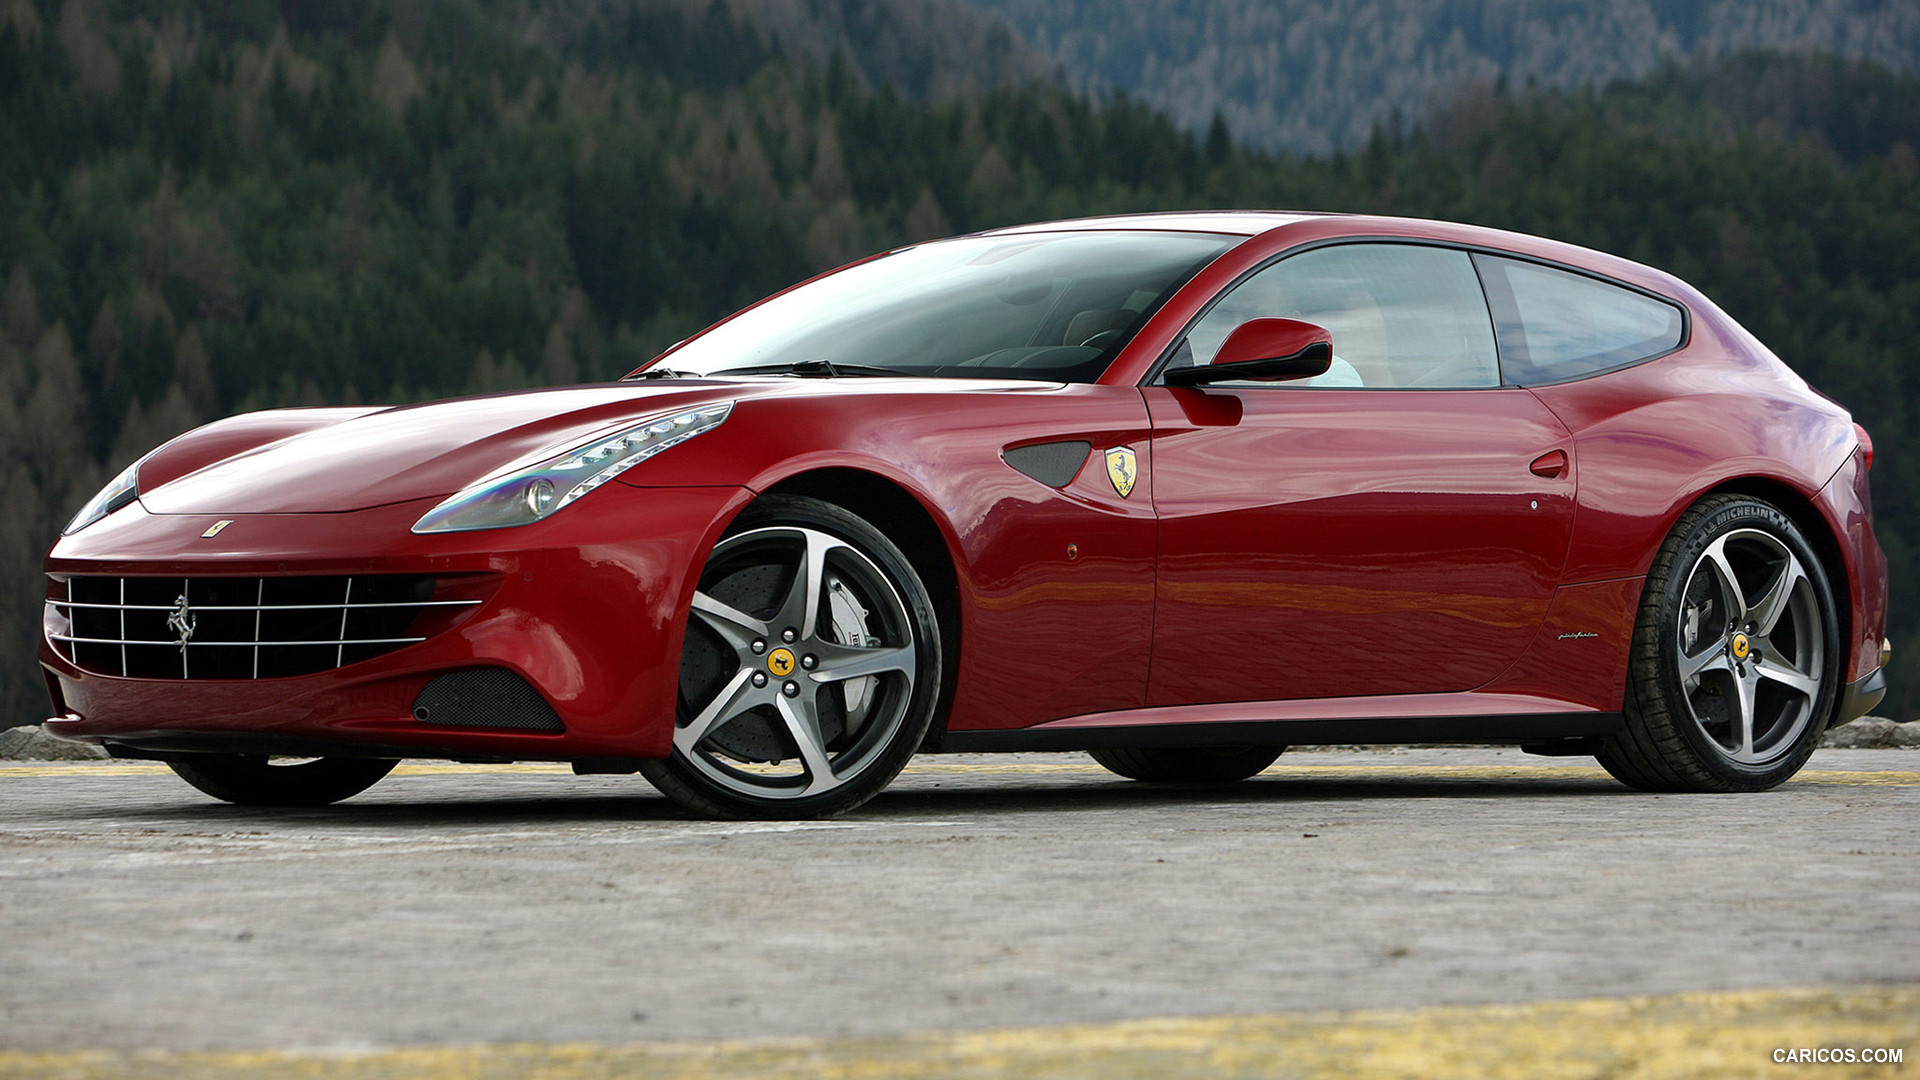 1920x1080 - Ferrari FF Wallpapers 26